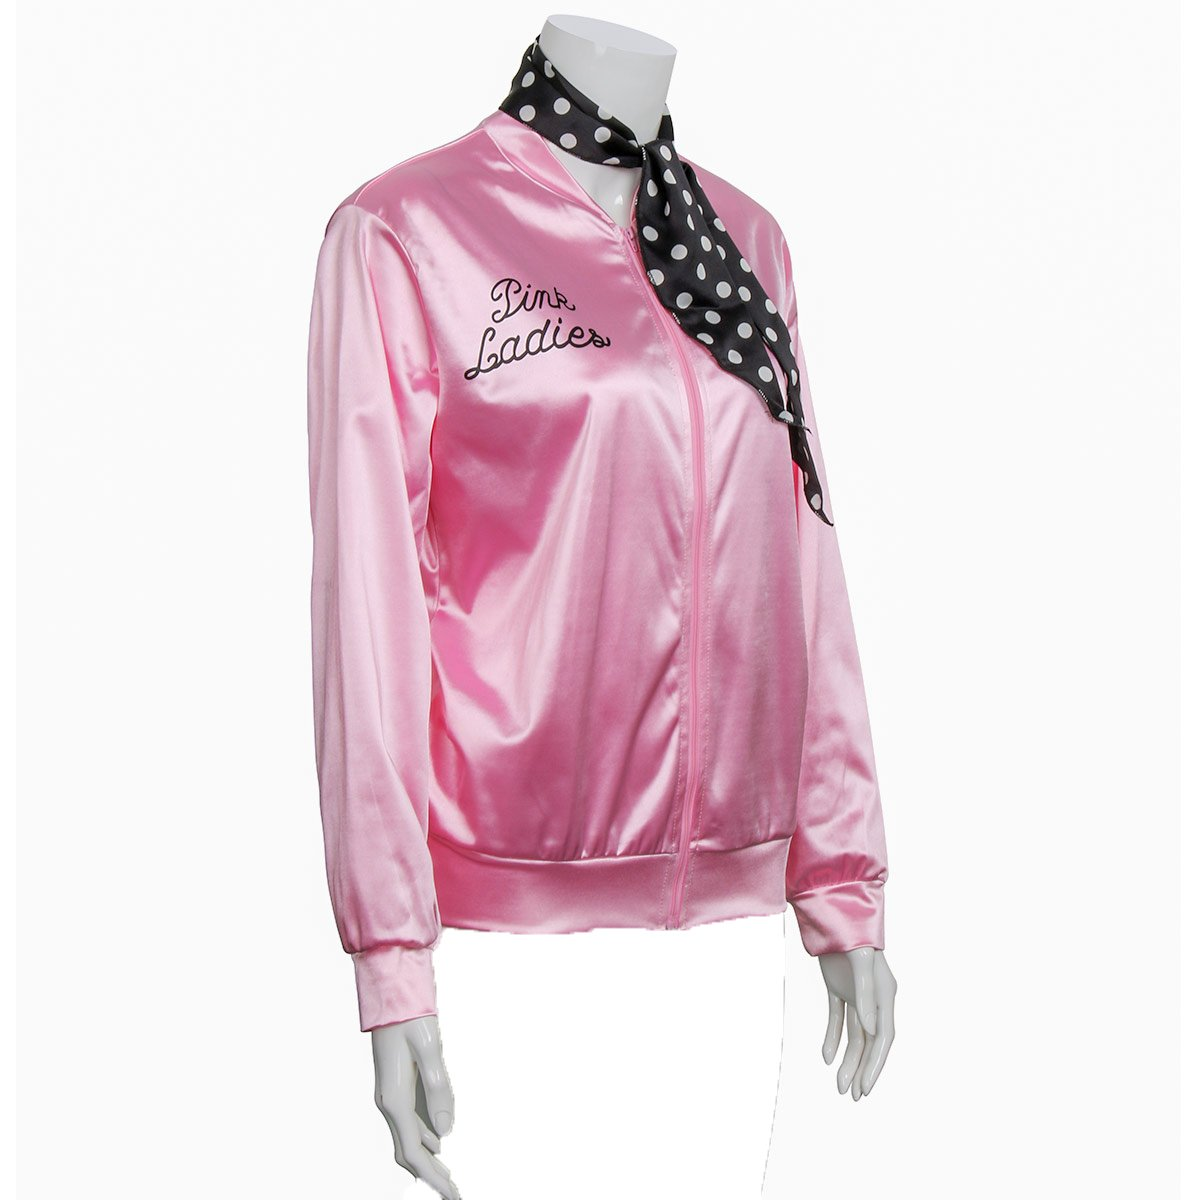 COSFLY Ladies 50S Grease T Bird Danny Pink Satin Jacket Halloween Cosplay Costume with Neck Scarf (X-Large) by COSFLY (Image #2)